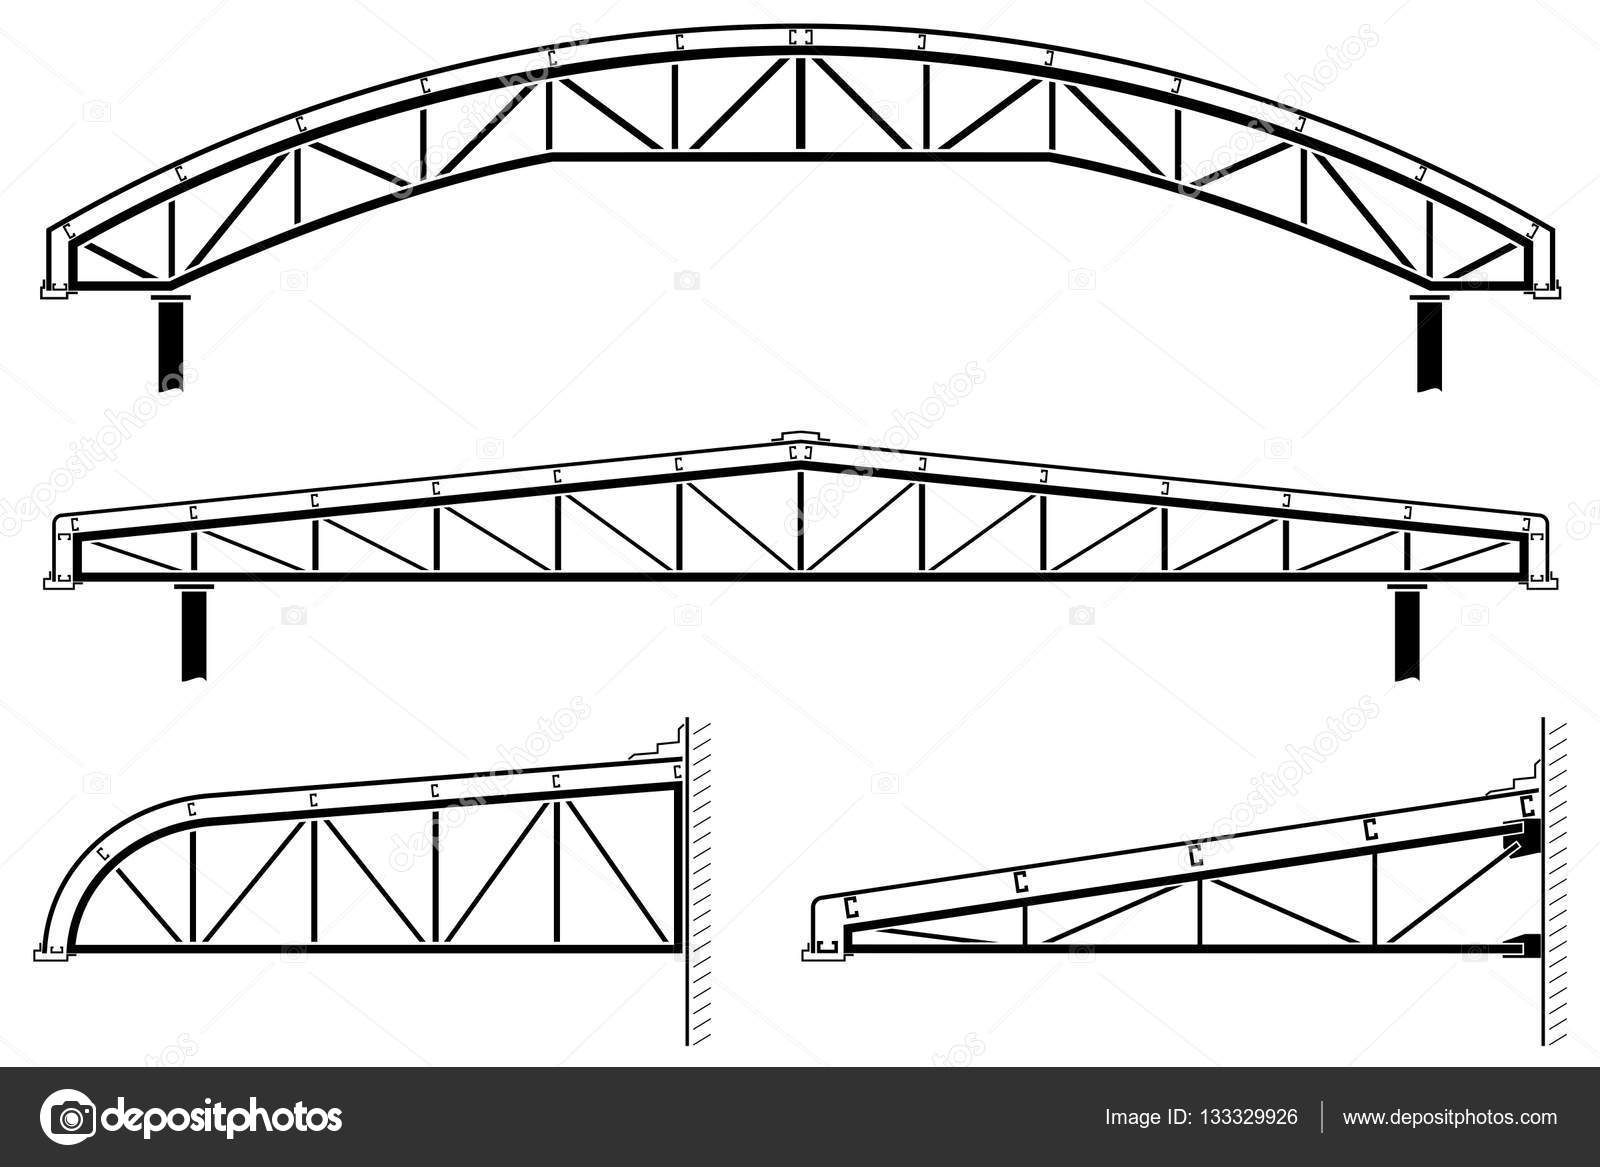 Roofing building,steel frame,roof truss collection, vector ...